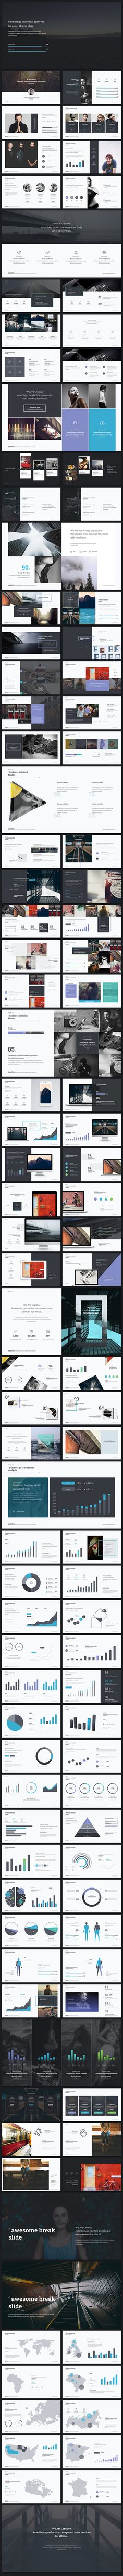 Martin Business Themes